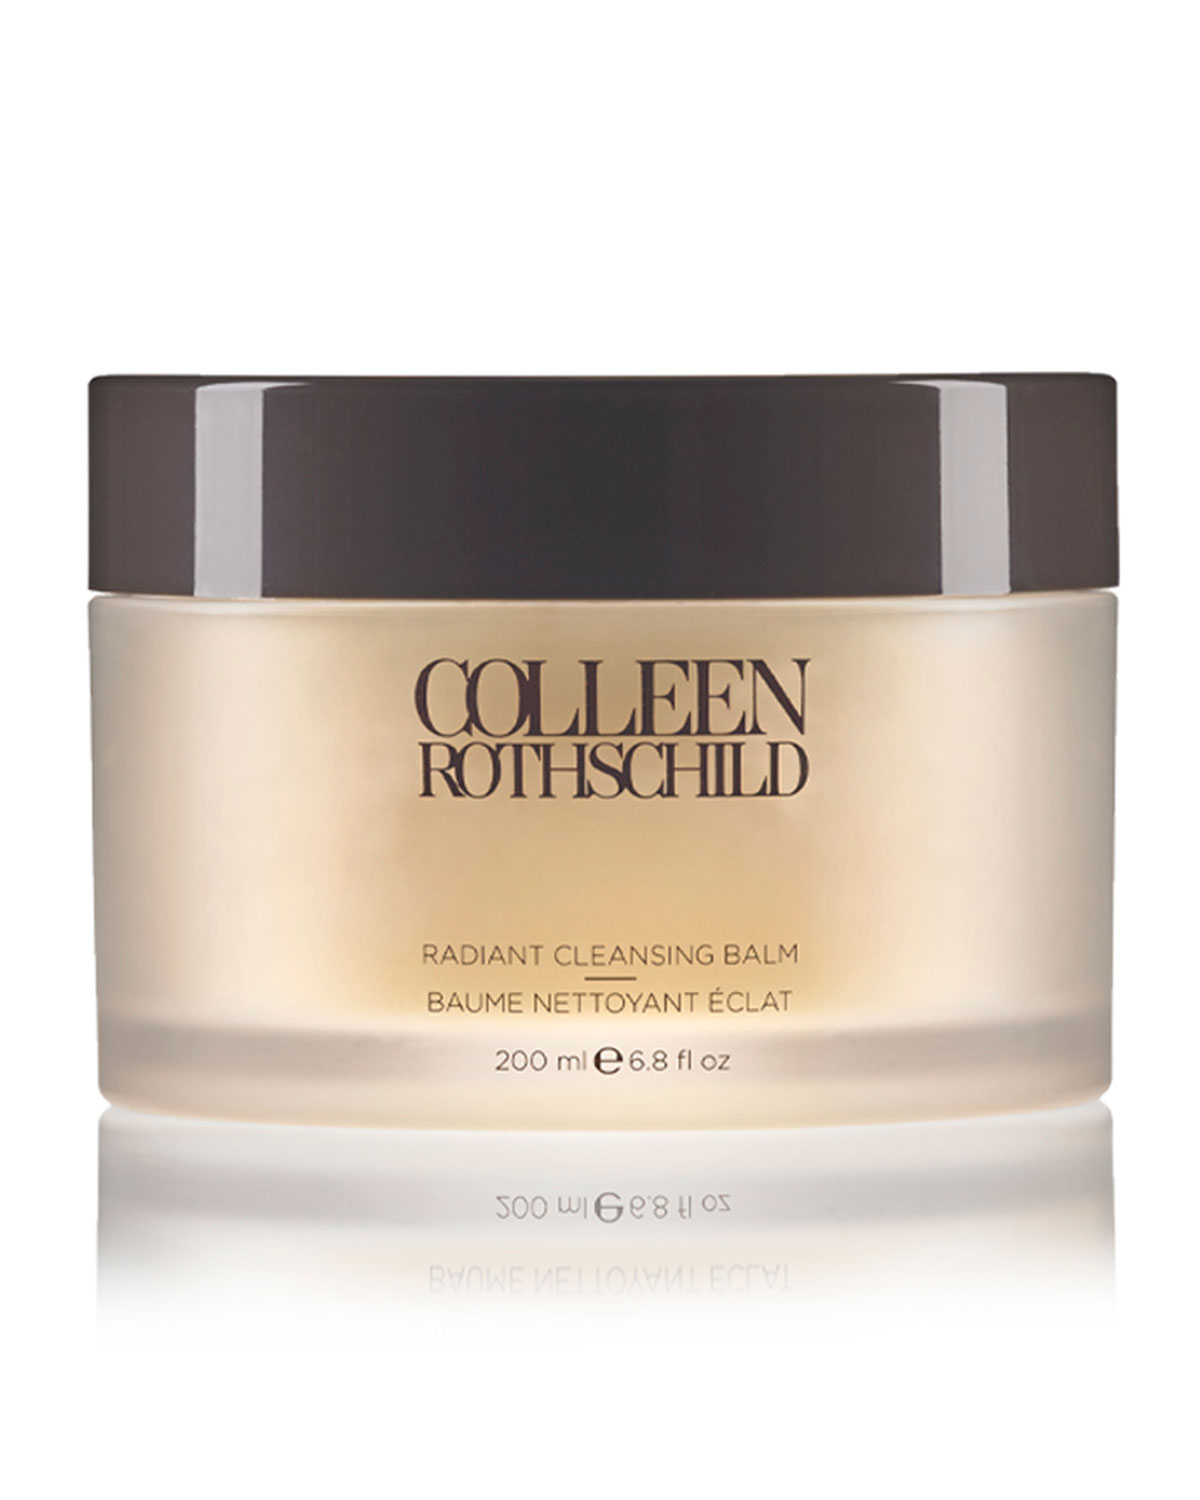 Colleen Rothschild BeautyJumbo Radiant Cleansing Balm